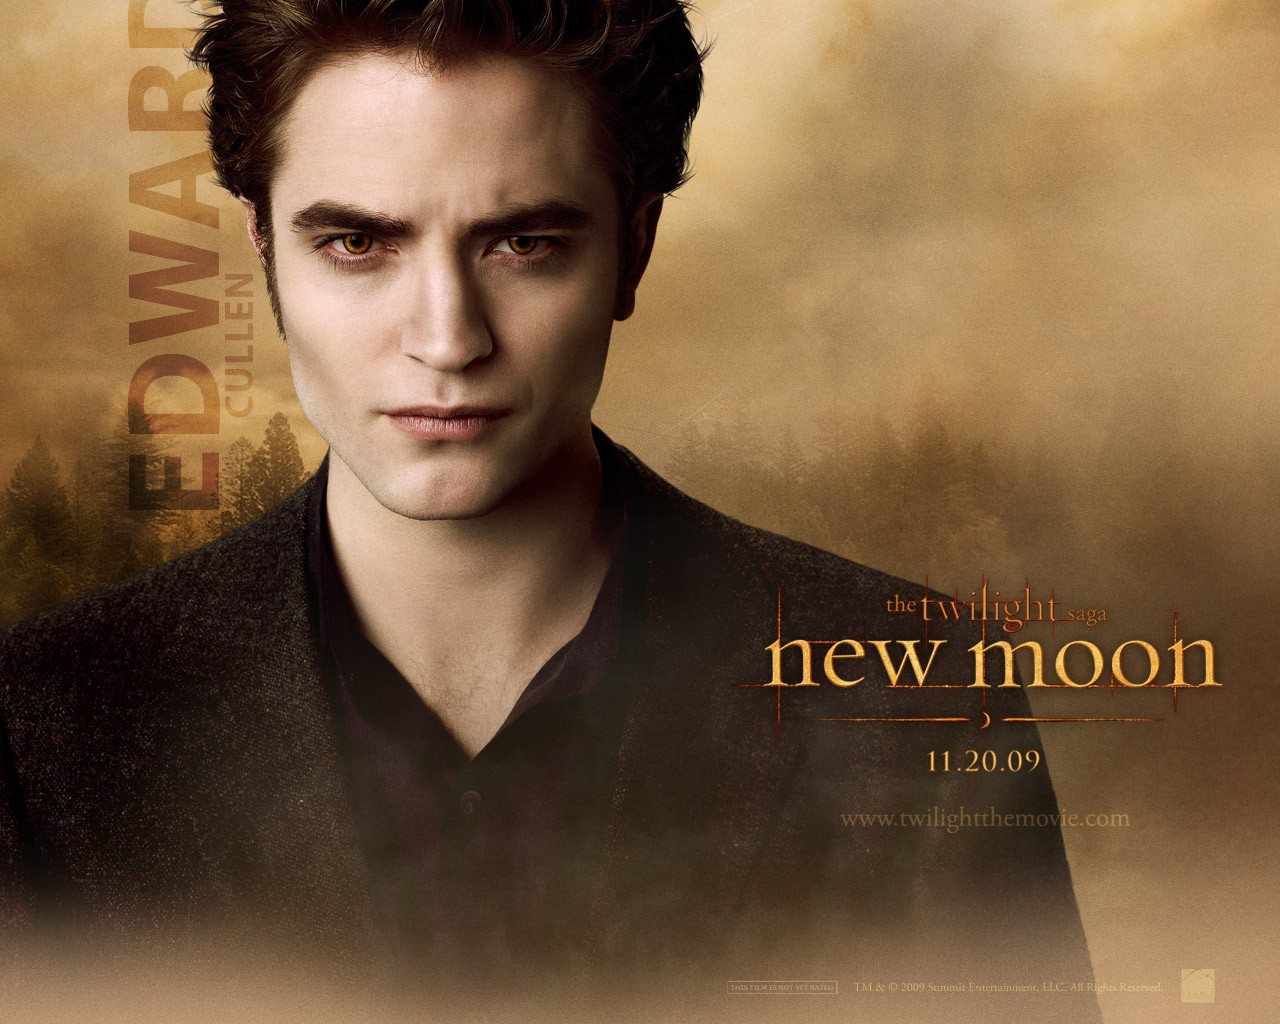 Un wallpaper ufficiale dedicato al personaggio di Edward Cullen (Robert Pattinson) per il film Twilight Saga: New Moon